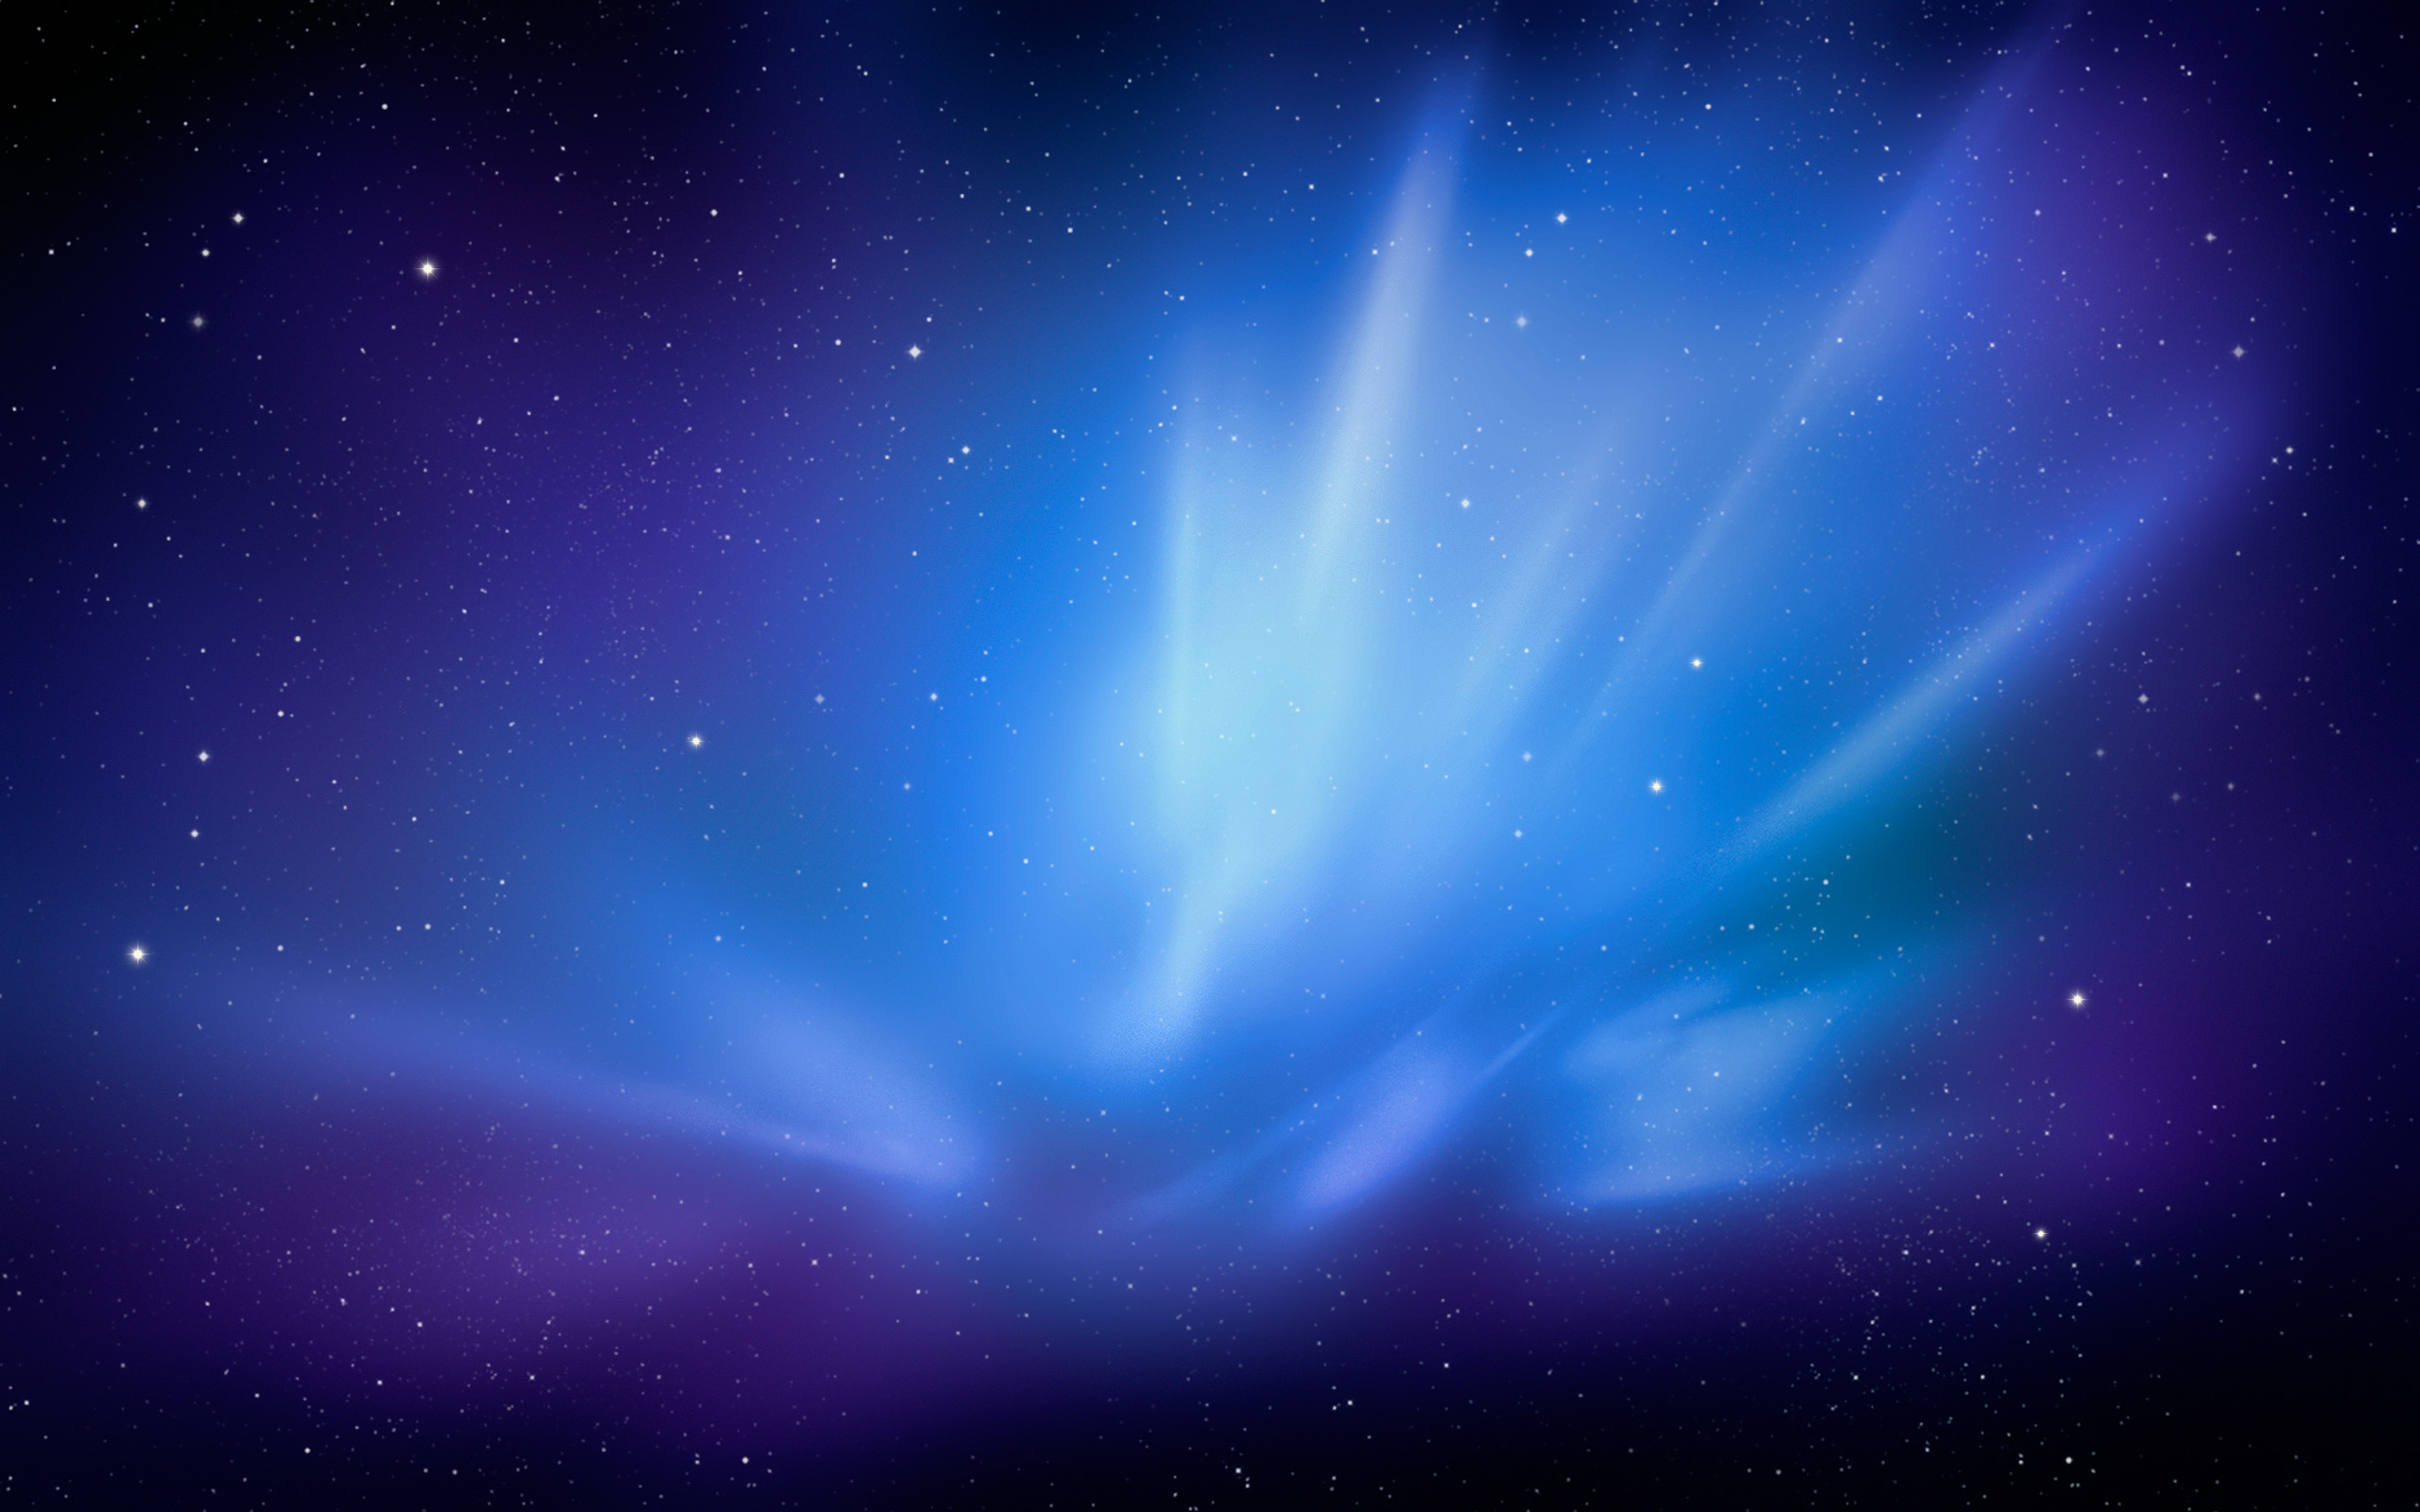 Osx Wallpapers ID: ZZR3737